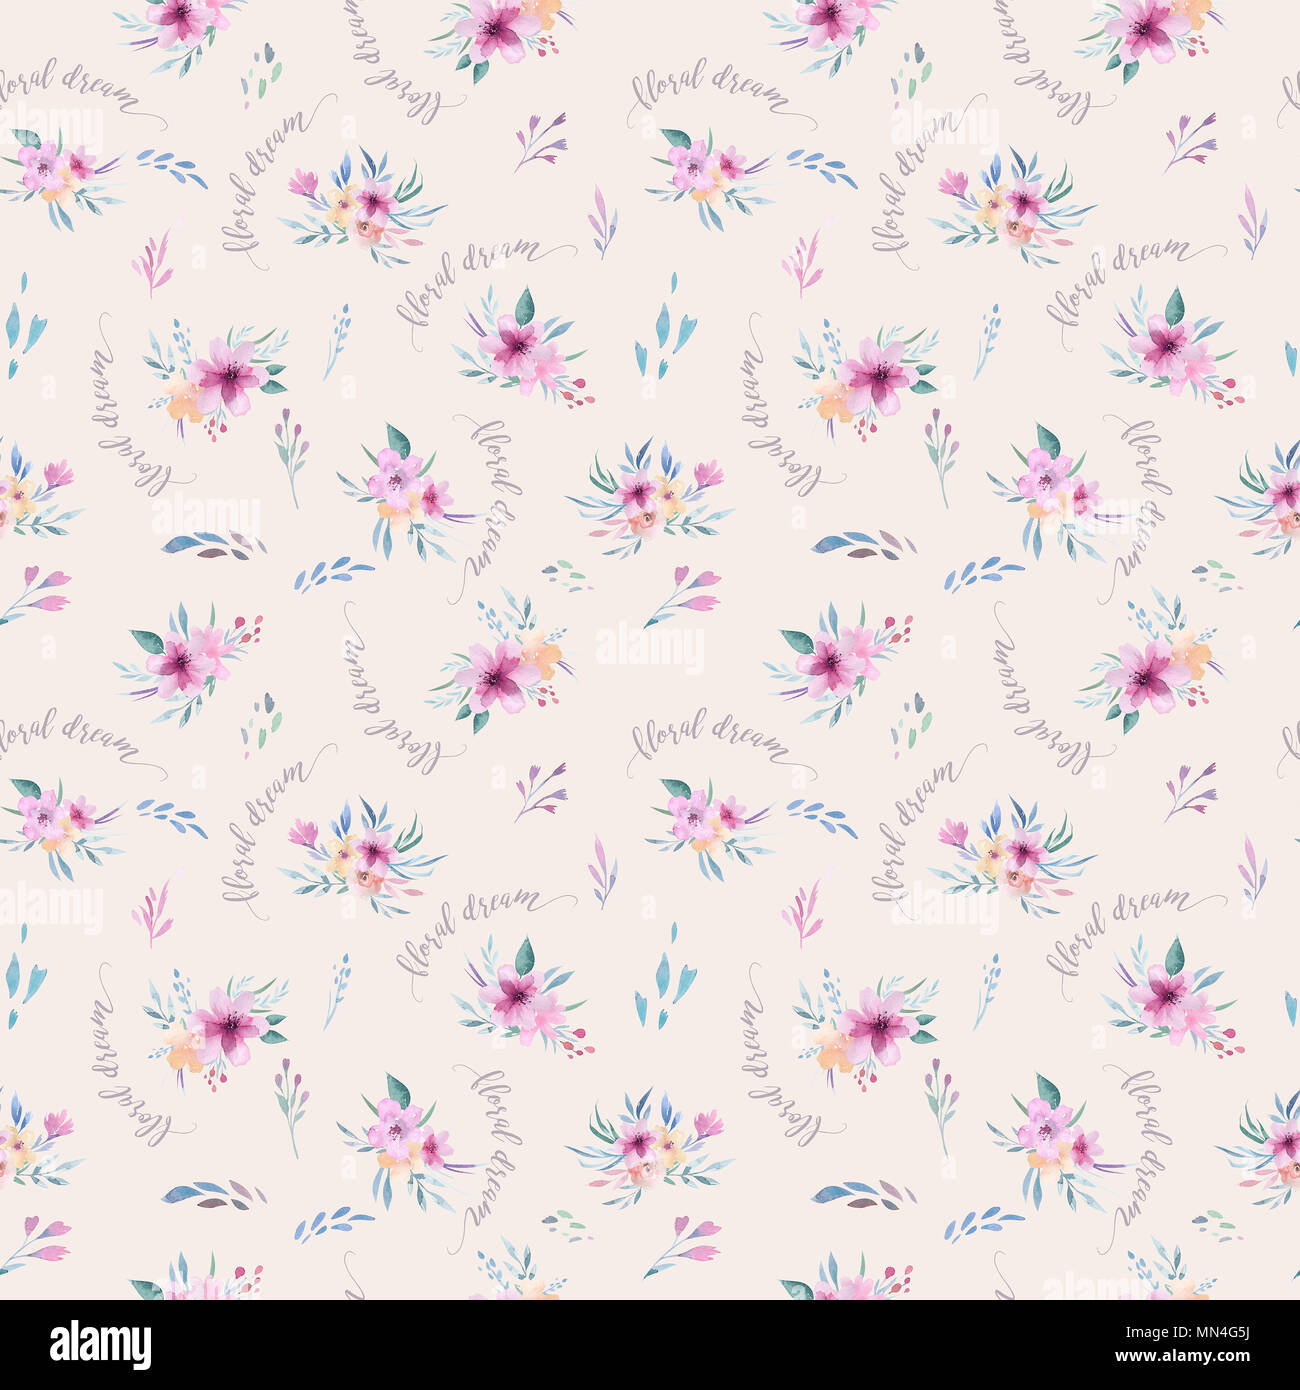 Watercolor floral pattern. Seamless pattern with purple, gold and pink bouquet on white background. Flowers, roses, peonies and leaves Stock Photo